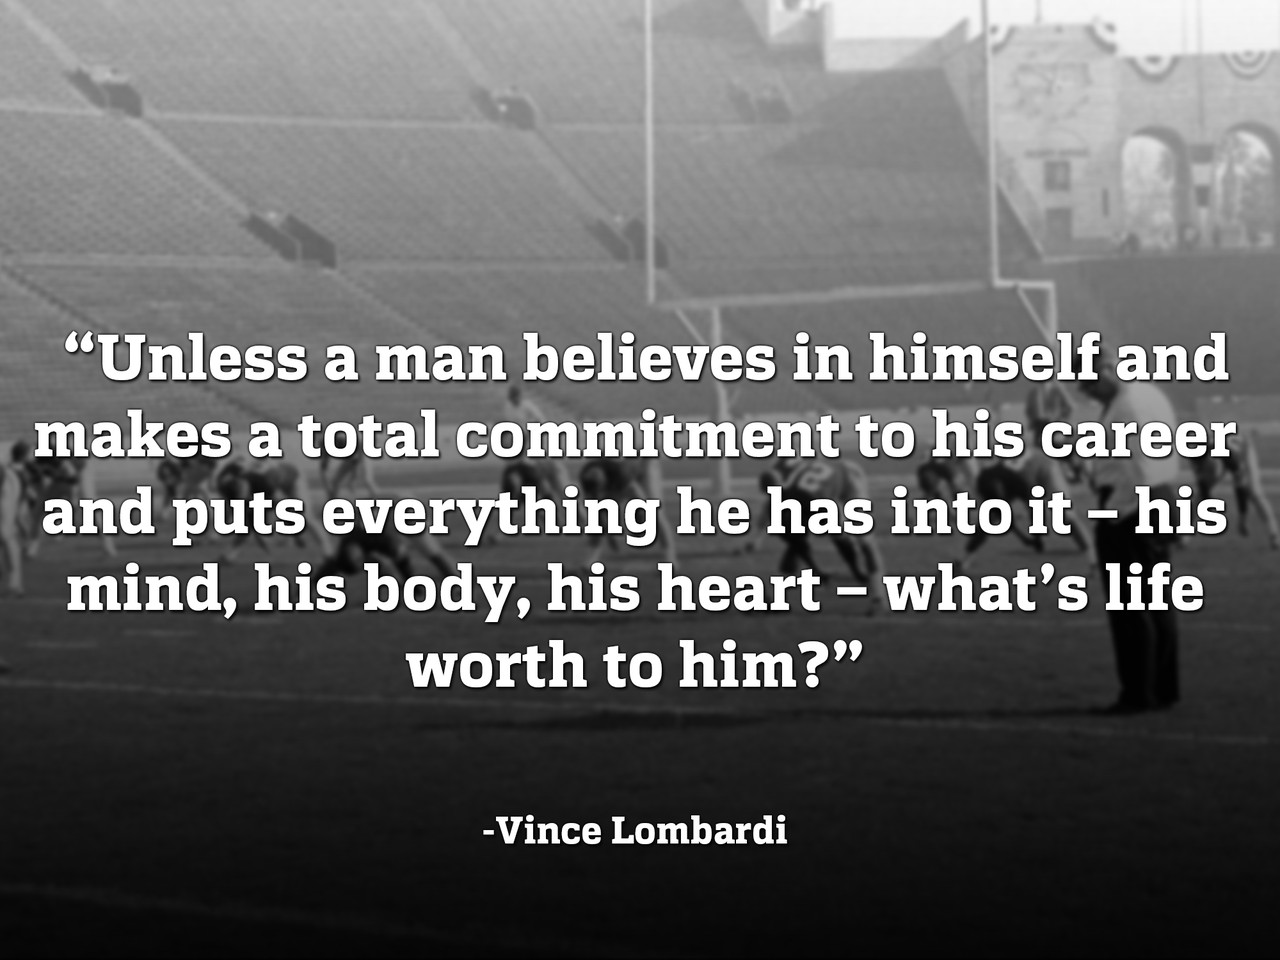 Nike Motivational Sports Quotes Wallpaper Vince Lombardi Quotes Wallpaper Quotesgram